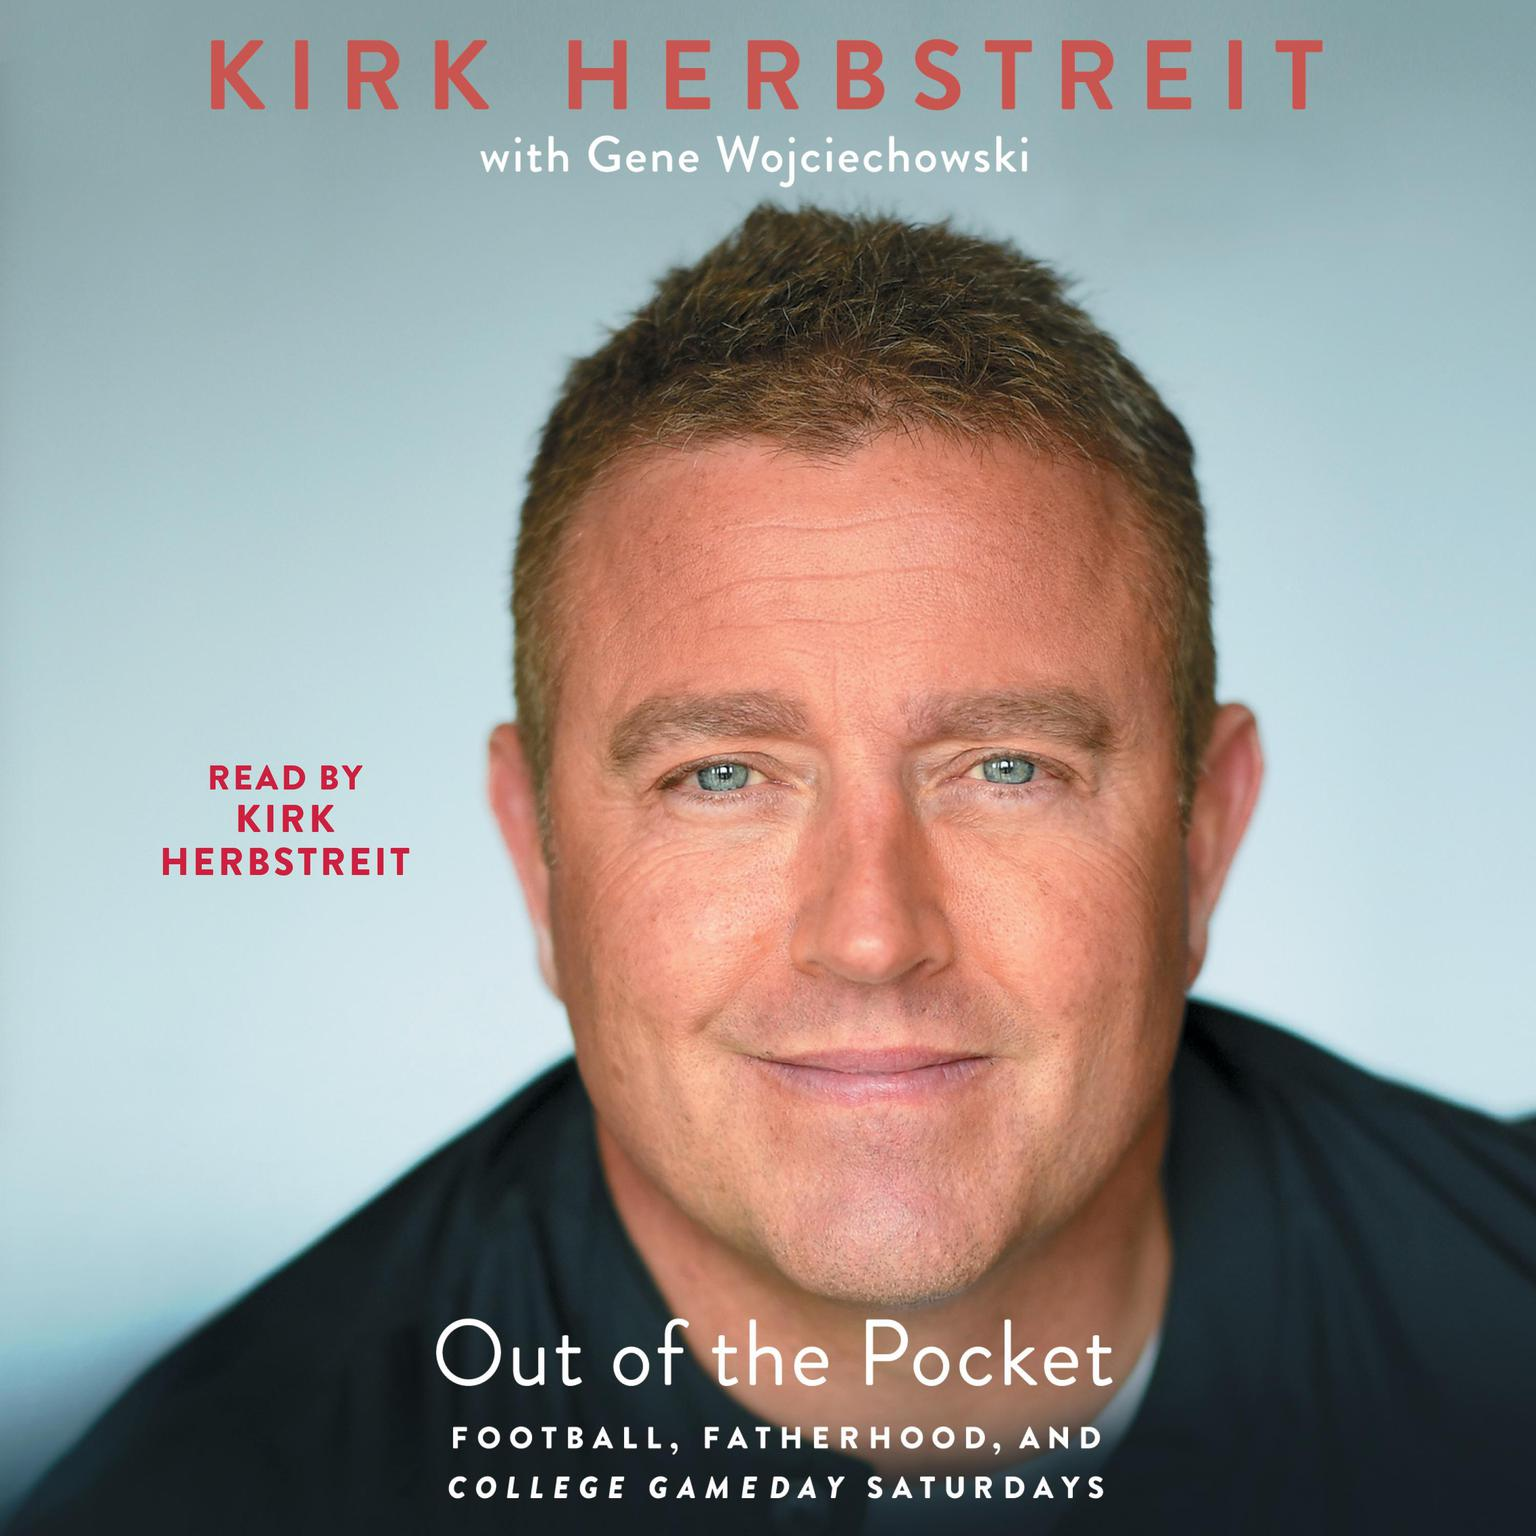 Out of the Pocket: Football, Fatherhood, and College GameDay Saturdays Audiobook, by Kirk Herbstreit